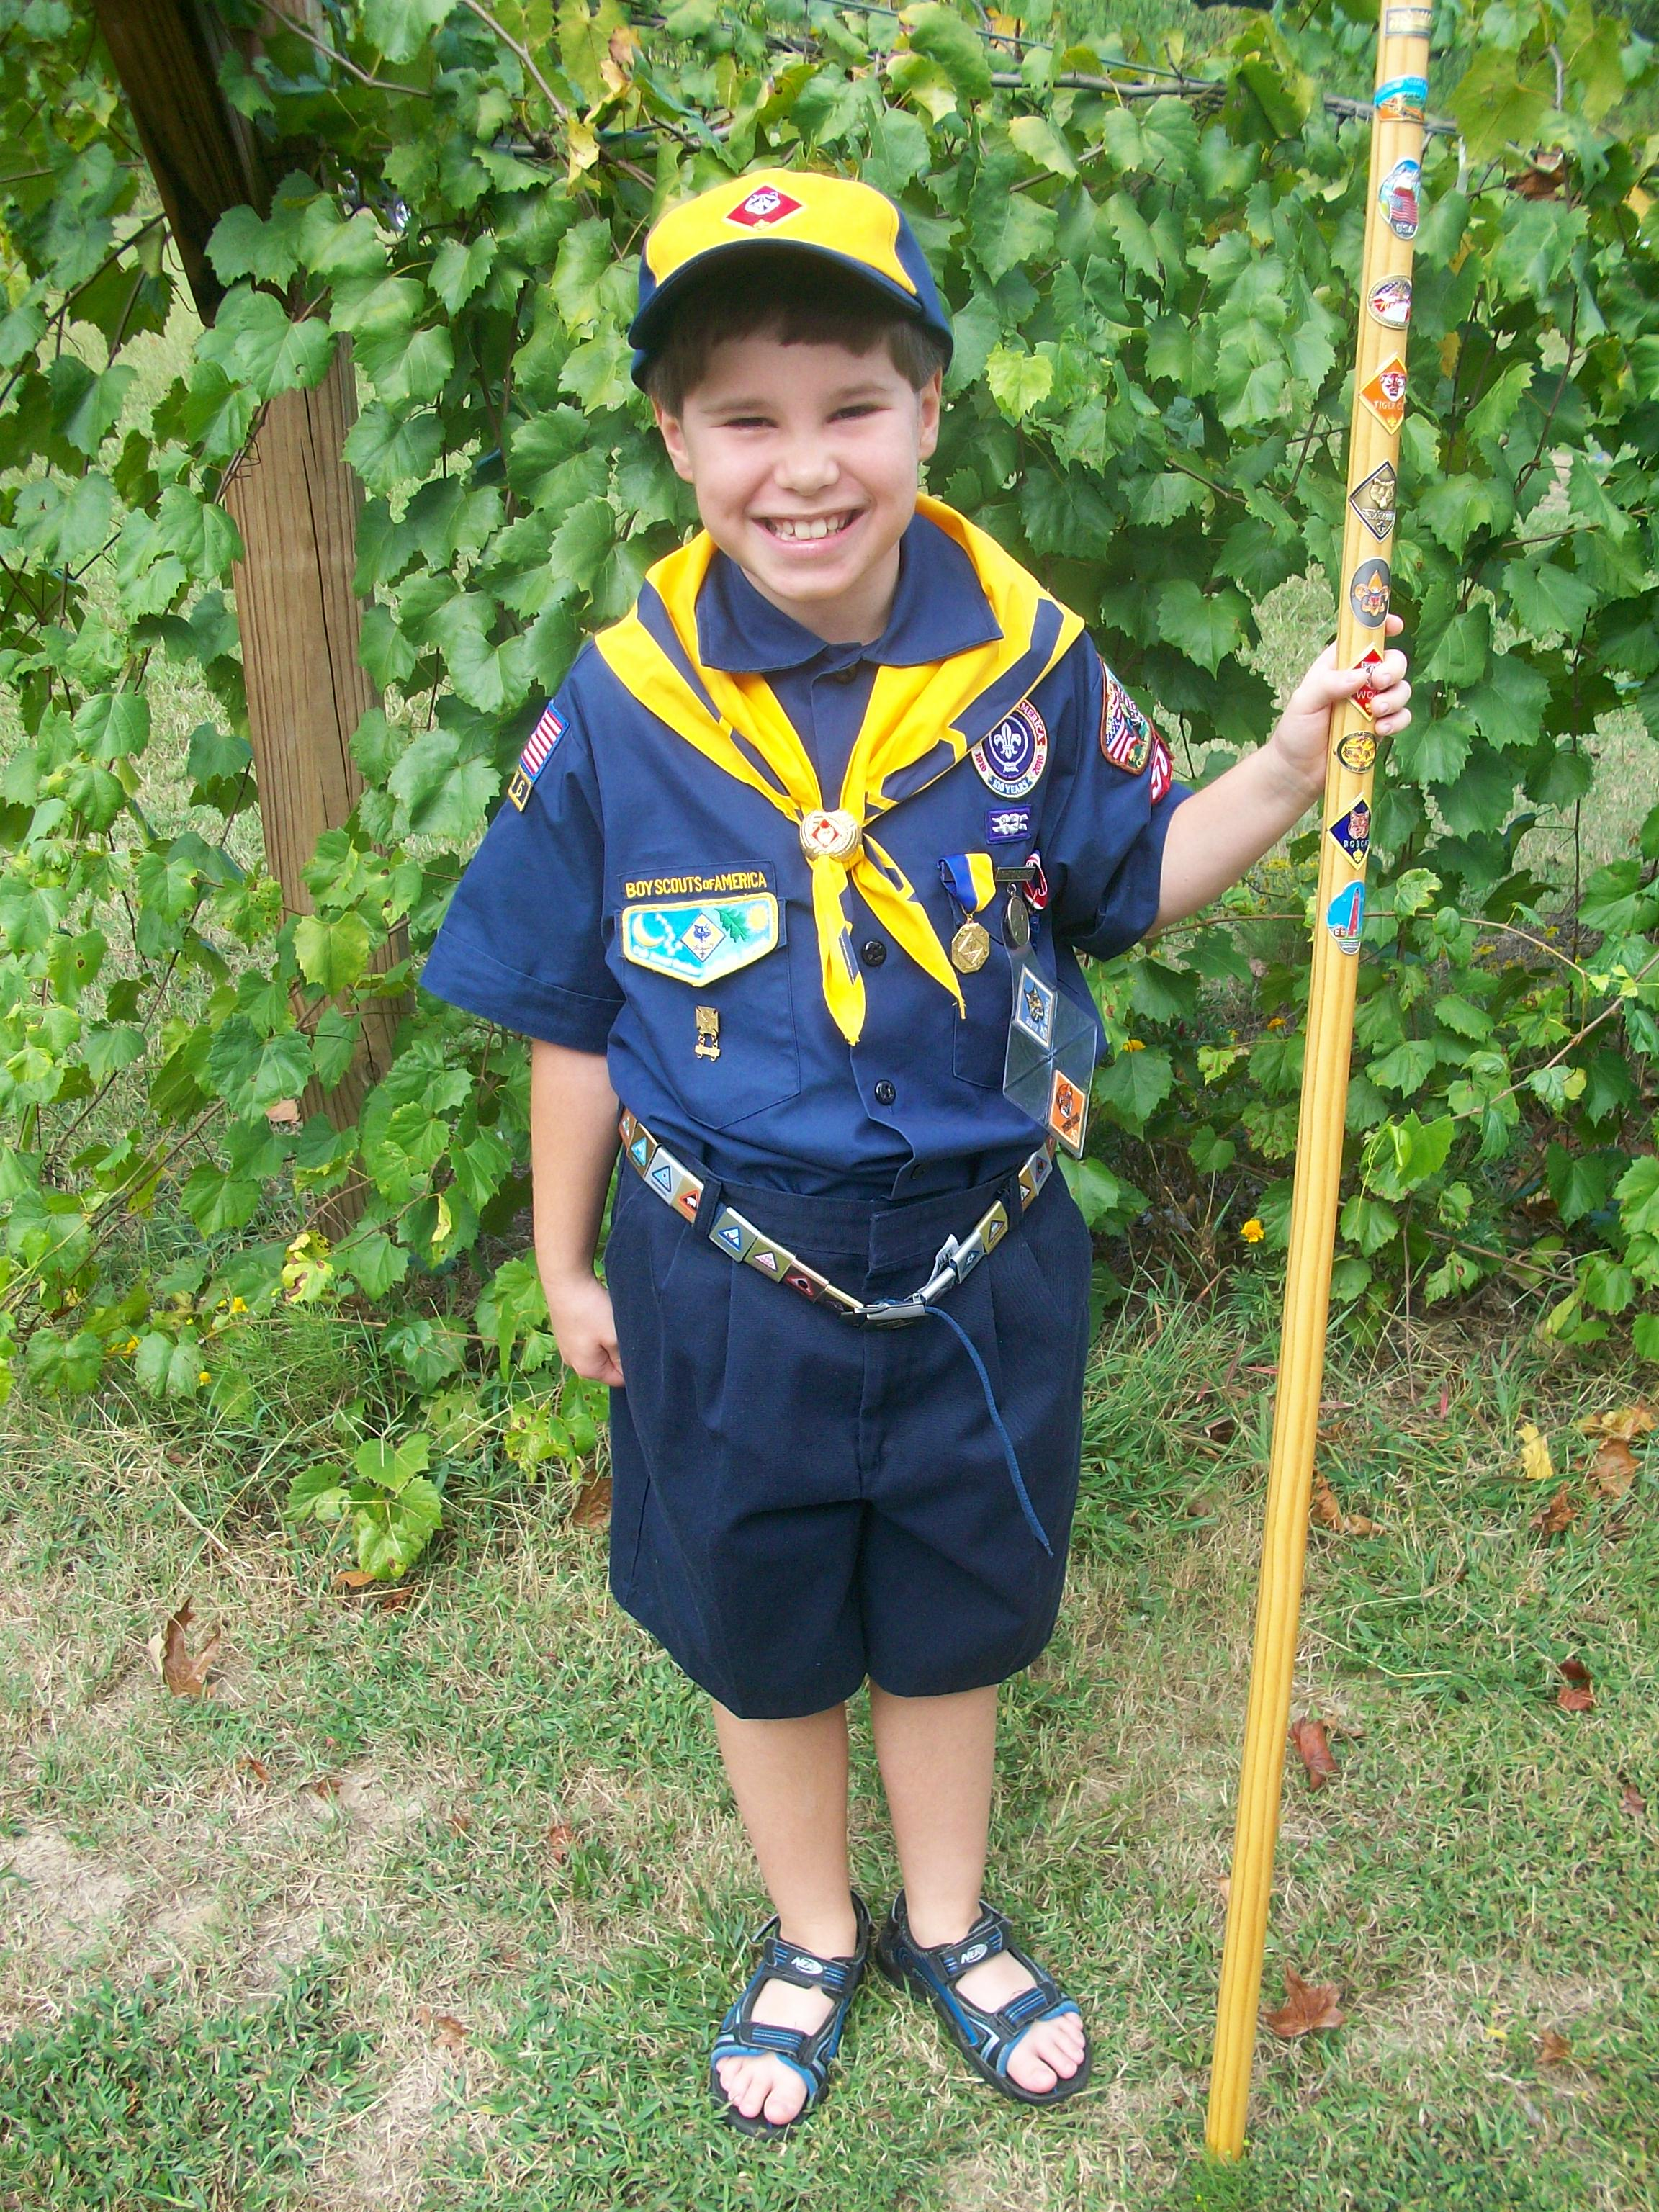 Scout Sunday Honoring God And Scouts By Michele Babcock